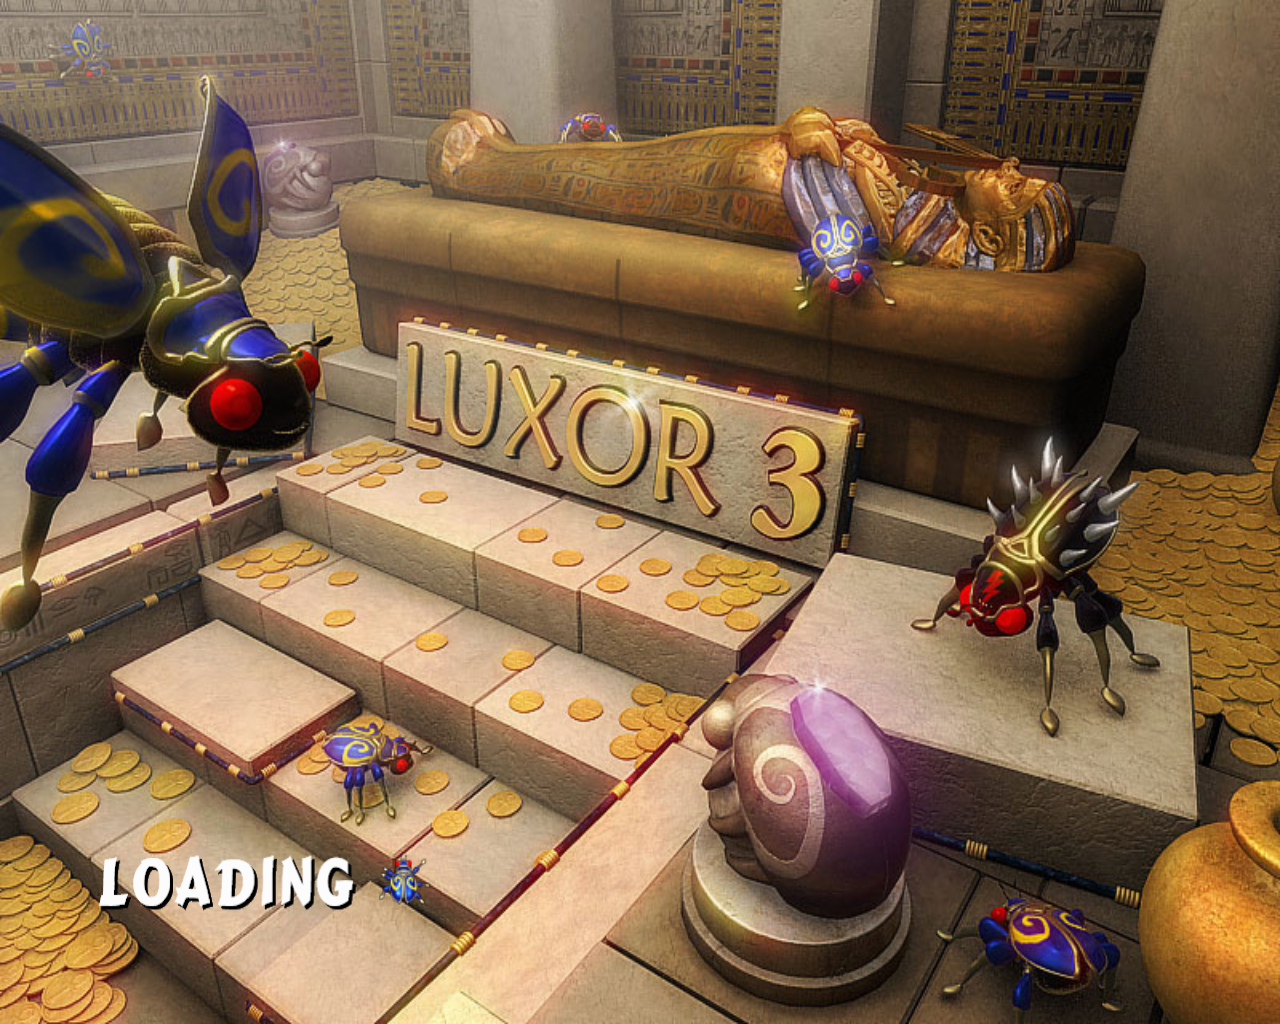 Luxor 3 Windows Loading screen